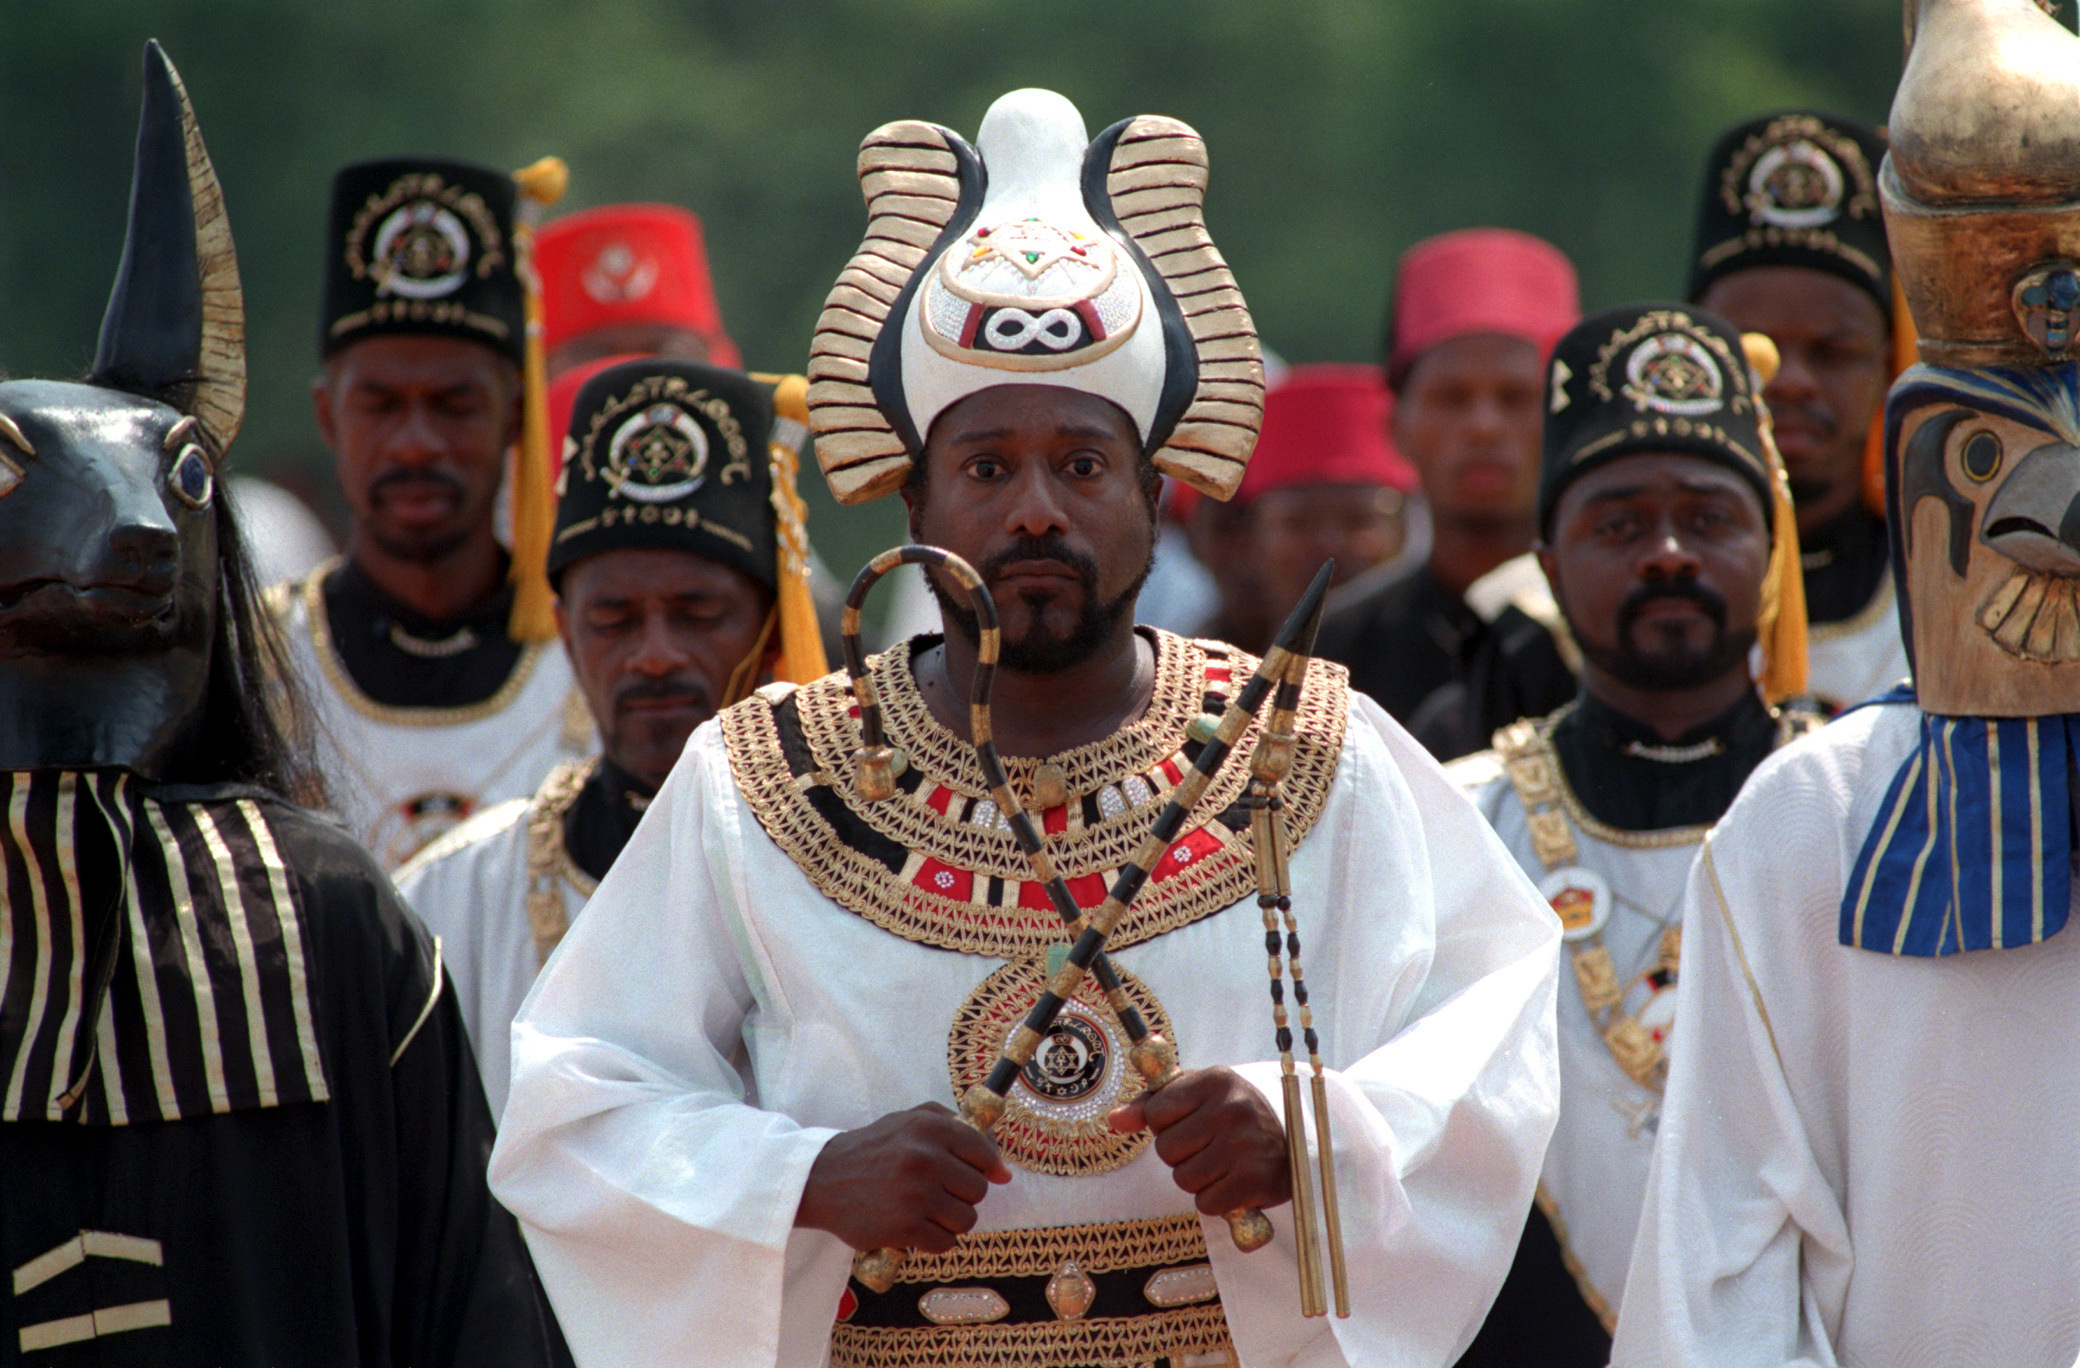 United Nations of Nuwaubians founder, Dr. 'Dwight' Malachi Z. York (cq), center, participates in the 'Procession of Osiris' at the farm in Putnam County near Eatonton during the Founders Day Festival on June 26, 1998.